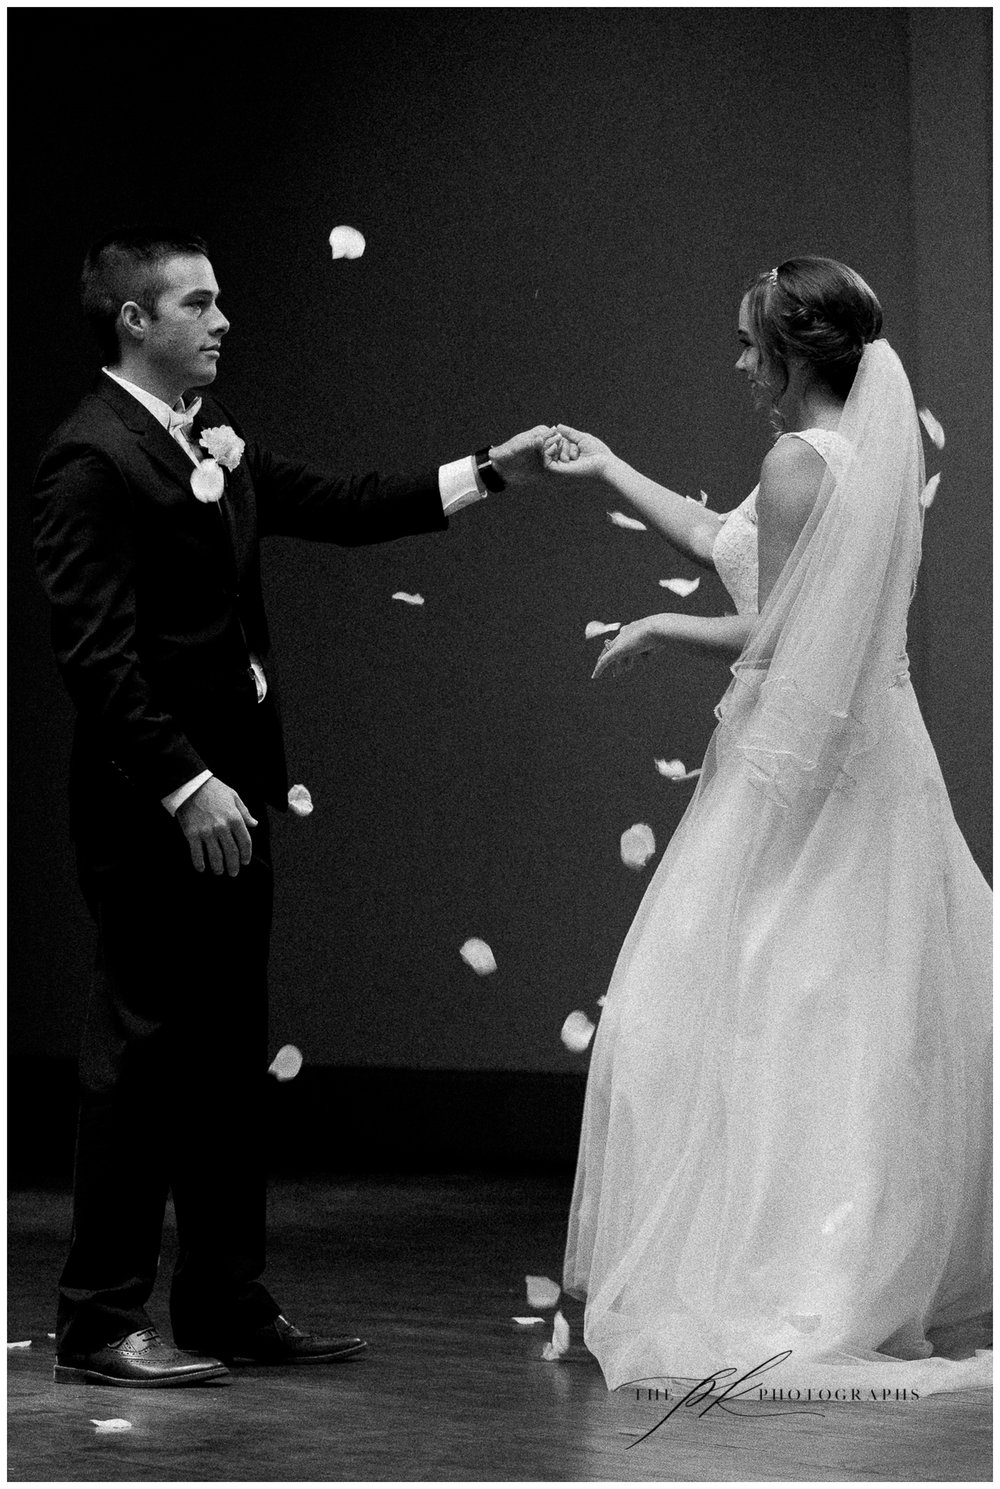 During the ceremony I noticed a gorgeous pocket of light (yes I know how crazy that sounds, but there was a skylight!) so right after the ceremony I scooped up a handful of the flower petals from the wedding aisle and had Adam twirl Allison while the petals fell.